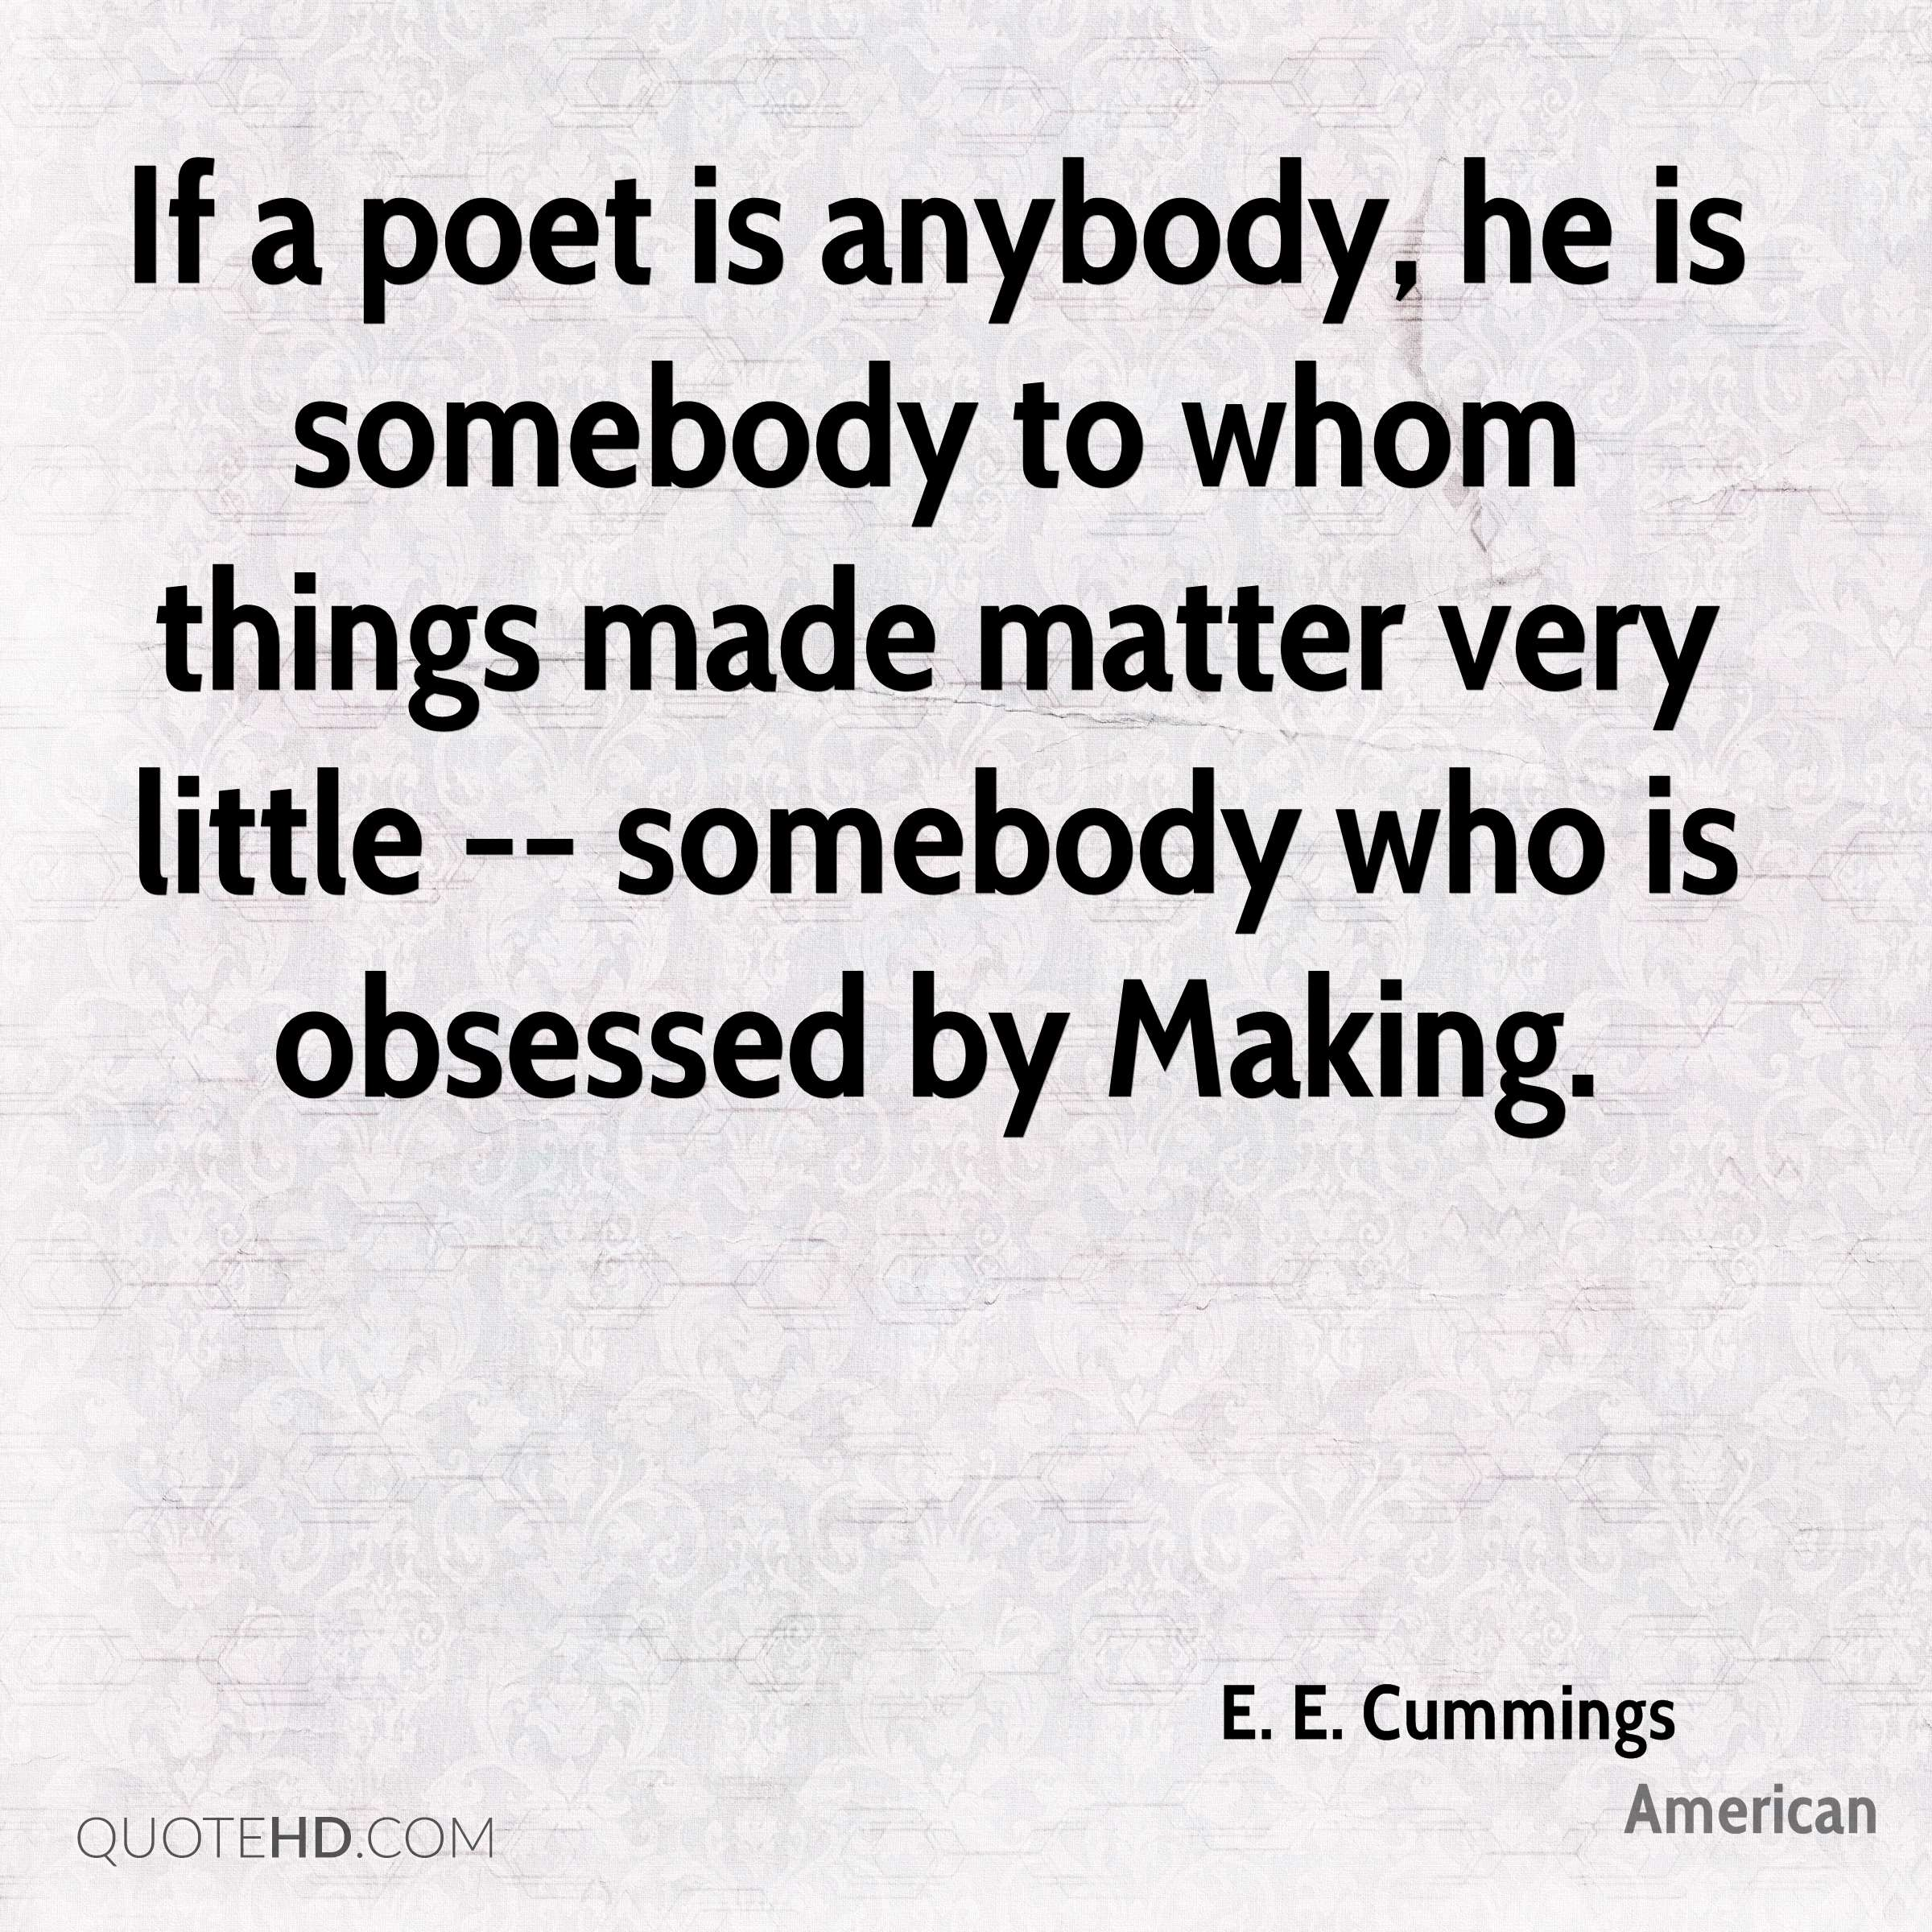 If a poet is anybody, he is somebody to whom things made matter very little -- somebody who is obsessed by Making.